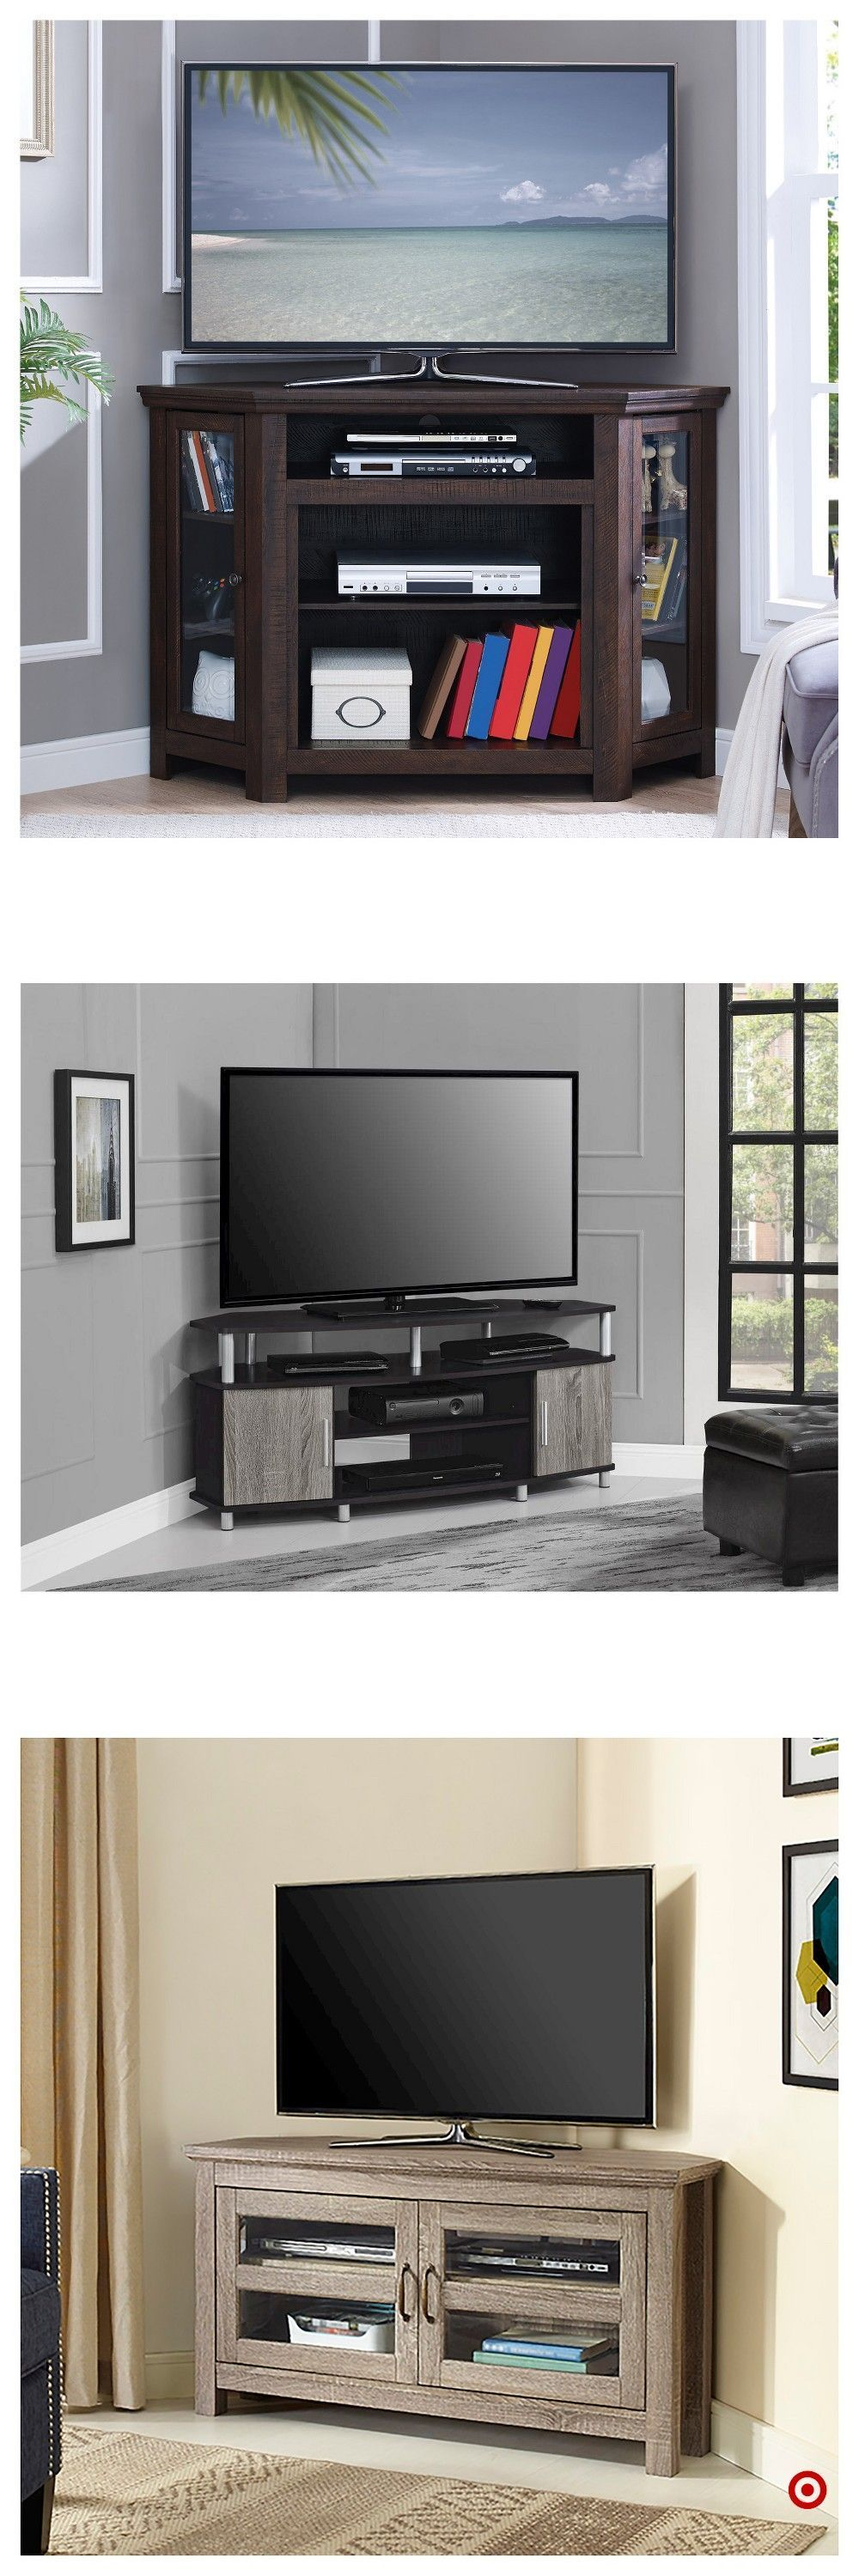 Shop Target for corner tv stand you will at great low prices ... on repurpose old entertainment center, vanity entertainment center, kitchen entertainment center, hutch entertainment center, home entertainment center, credenza entertainment center, laptop entertainment center, bed entertainment center, bookshelves entertainment center, door entertainment center, refinishing entertainment center, shelving entertainment center, book entertainment center, room entertainment center, kitchenette entertainment center, samurai entertainment center, bench entertainment center, farm entertainment center, office entertainment center, glass entertainment center,